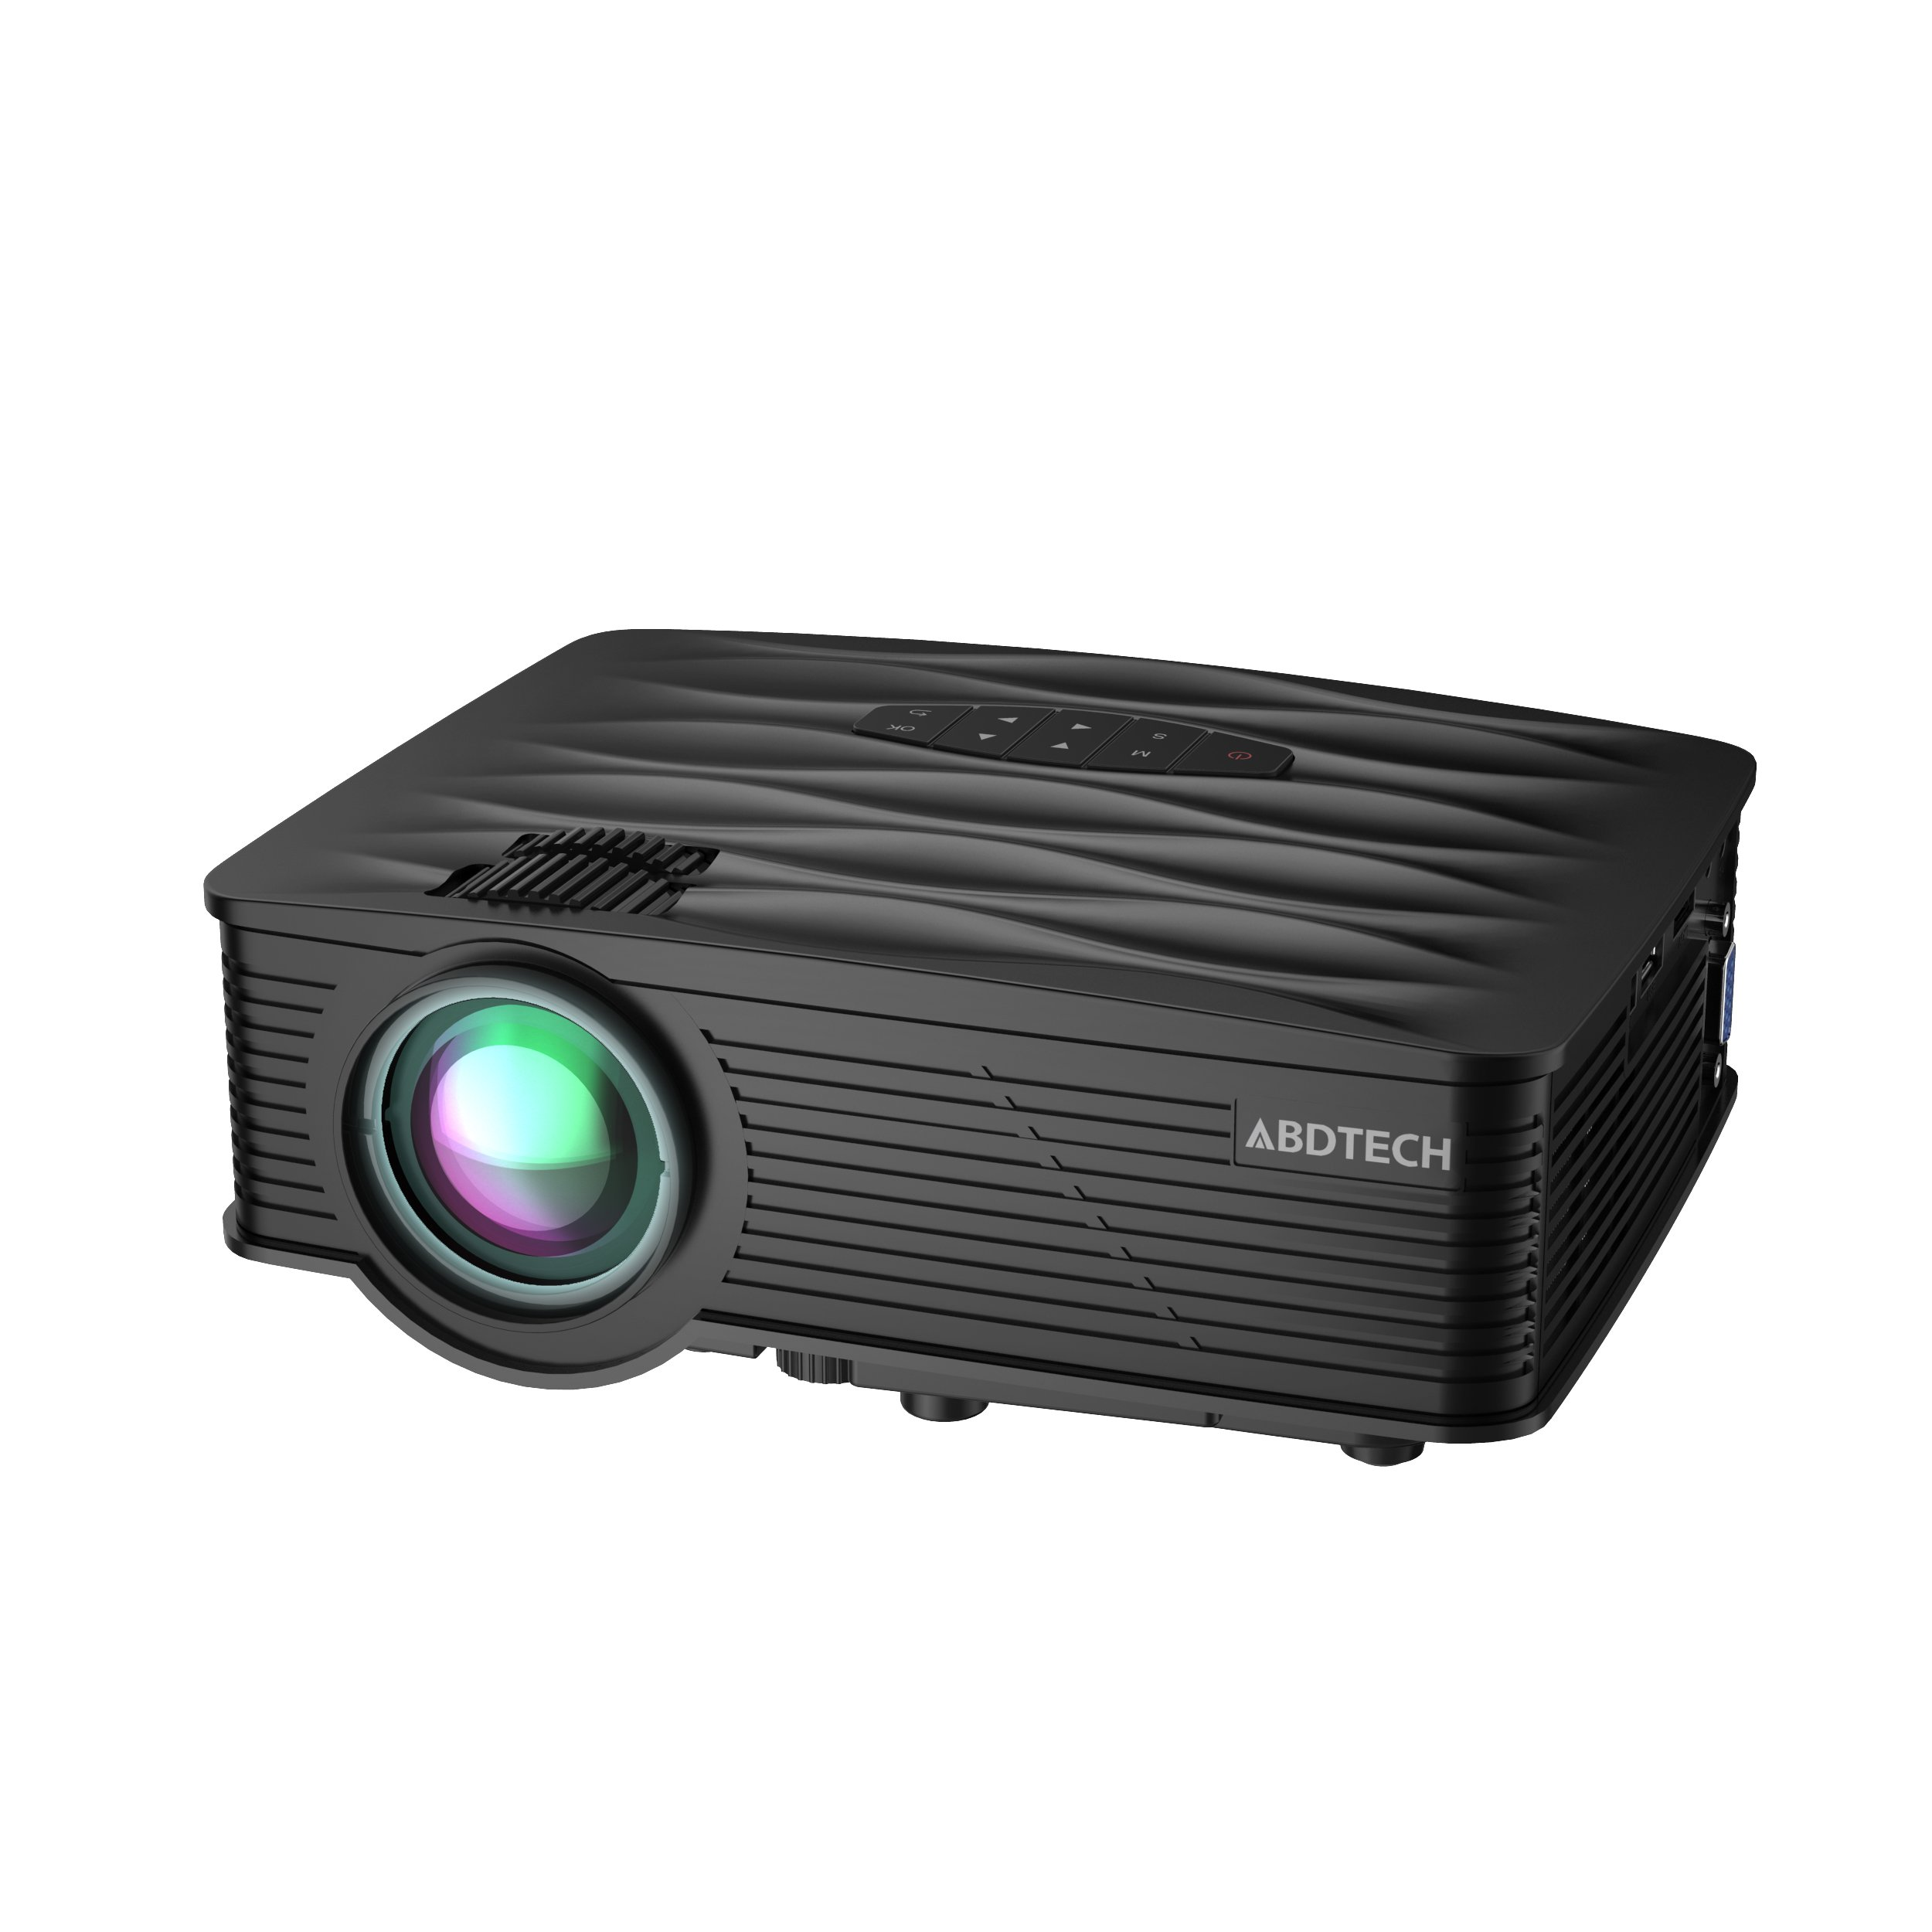 Abdtech Portable Mini Projector 1200 Lumens Home Theater LED Movie Projector Support 1080P Input HDMI USB SD VGA AV Interface For Outdoor Movie Night Home Cinema And Video Games